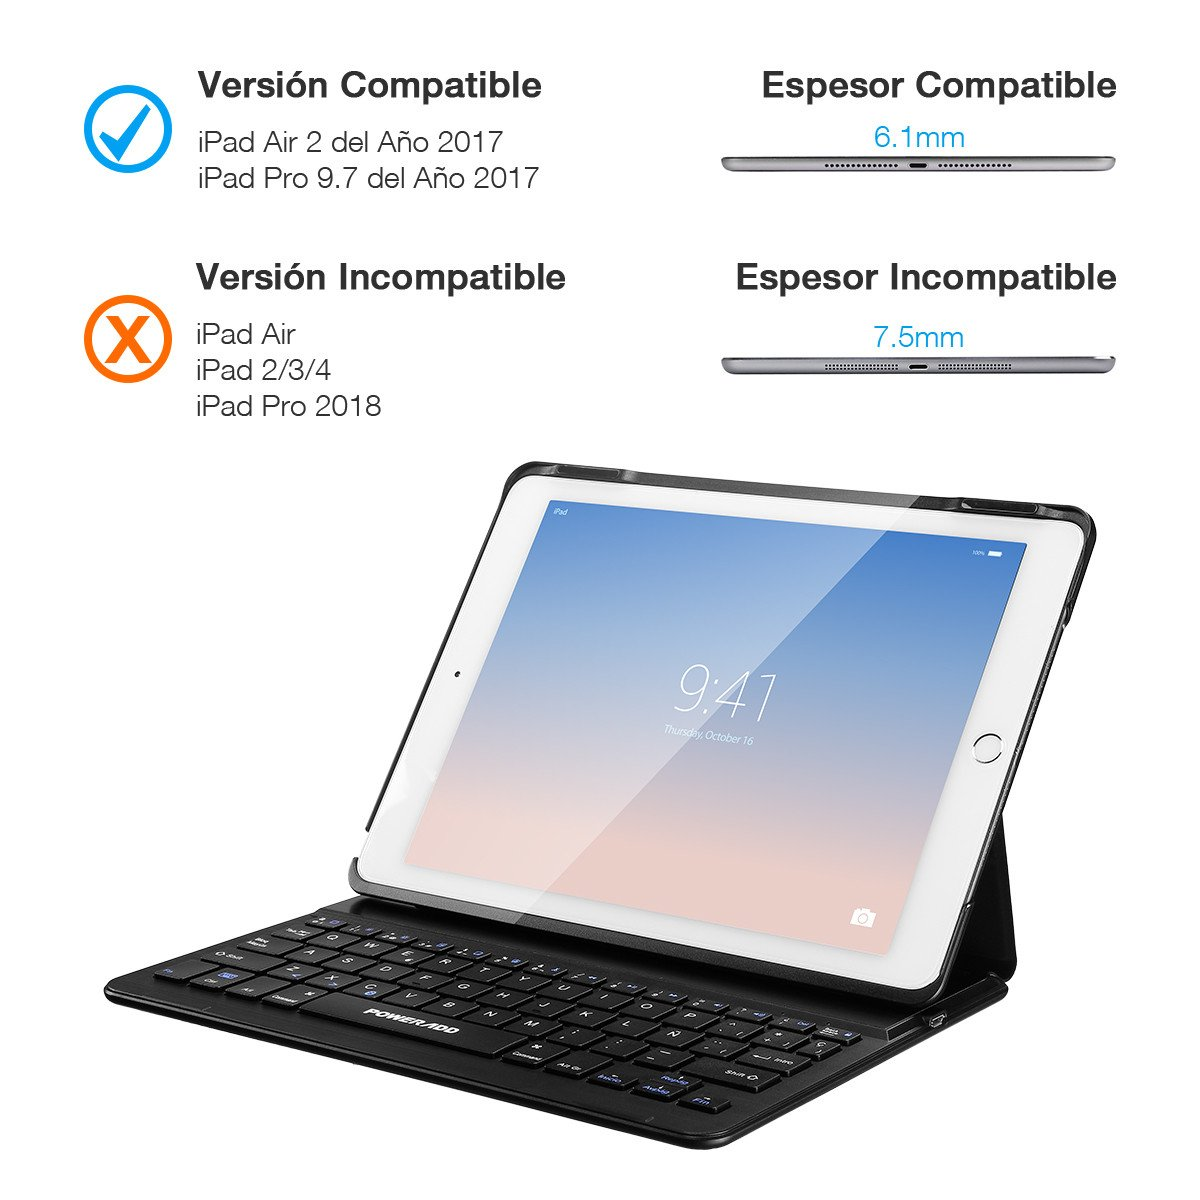 Poweradd Funda con Teclado Bluetooth para iPad Air 2 & iPad Pro 9.7, Teclado Inálambrico Españoles con USA Boardcom Modulo Bluetooth 3.0(No incluir el iPad), 280mAh Batería de Litio Recargable.